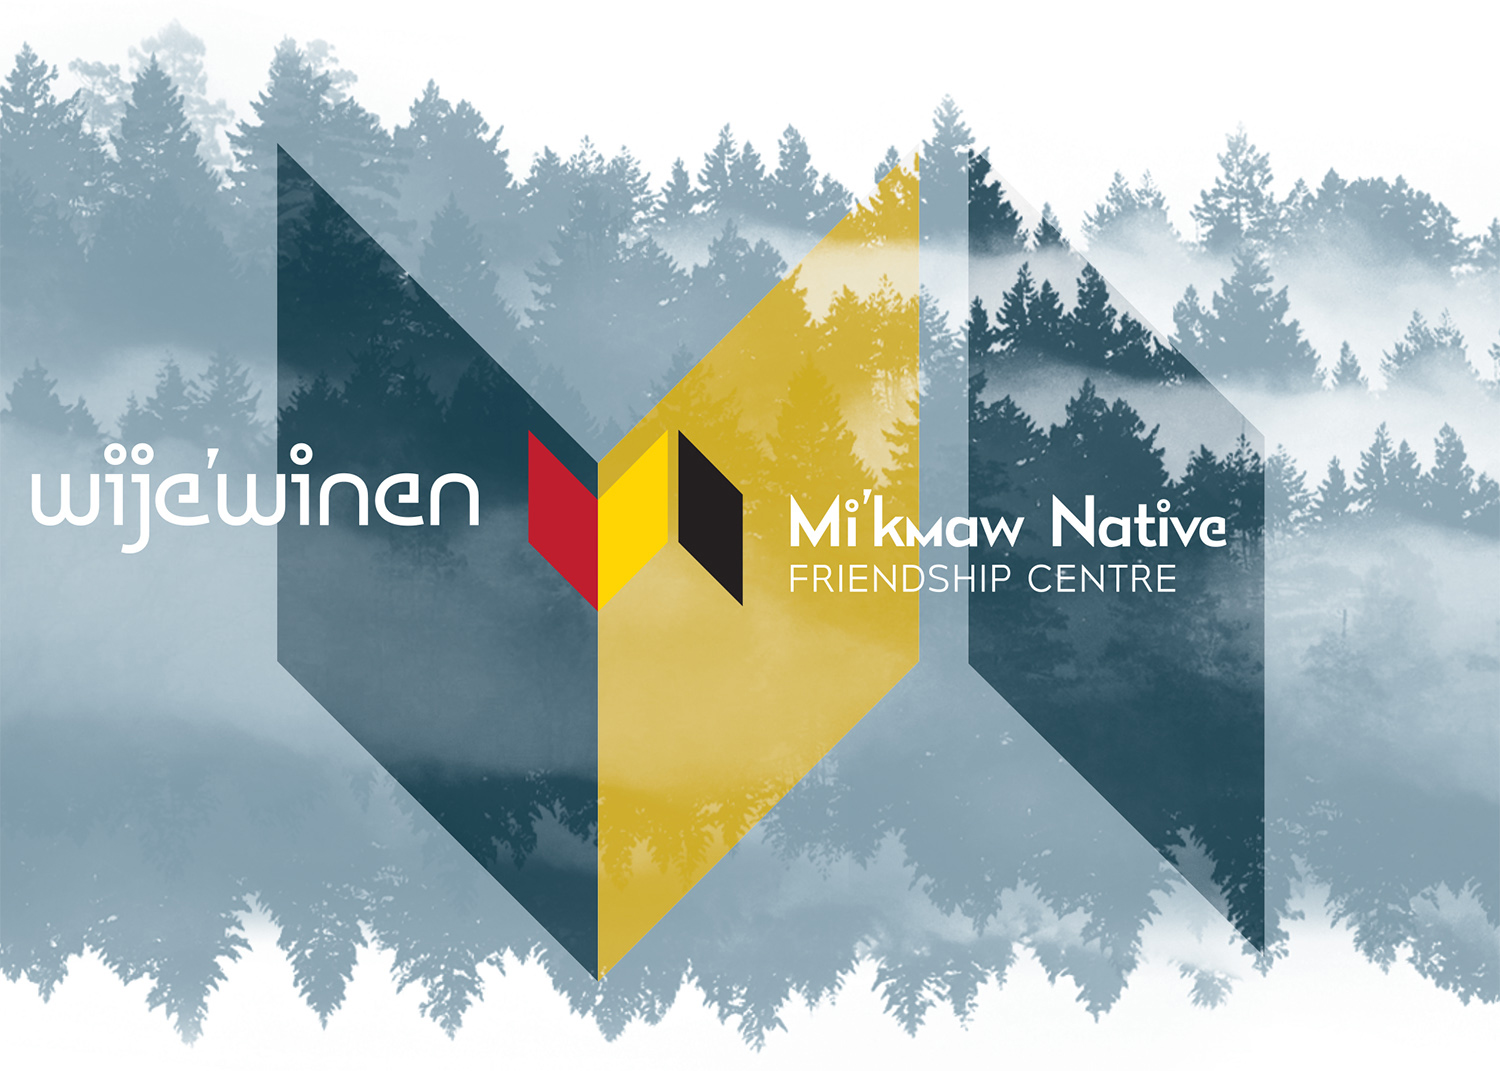 BRAND ELEMENTS Fathom Studio, formerly Form:Media created the Wije'winen word mark to compliment the existing logo of the Mi'kmaw Native Friendship Centre.